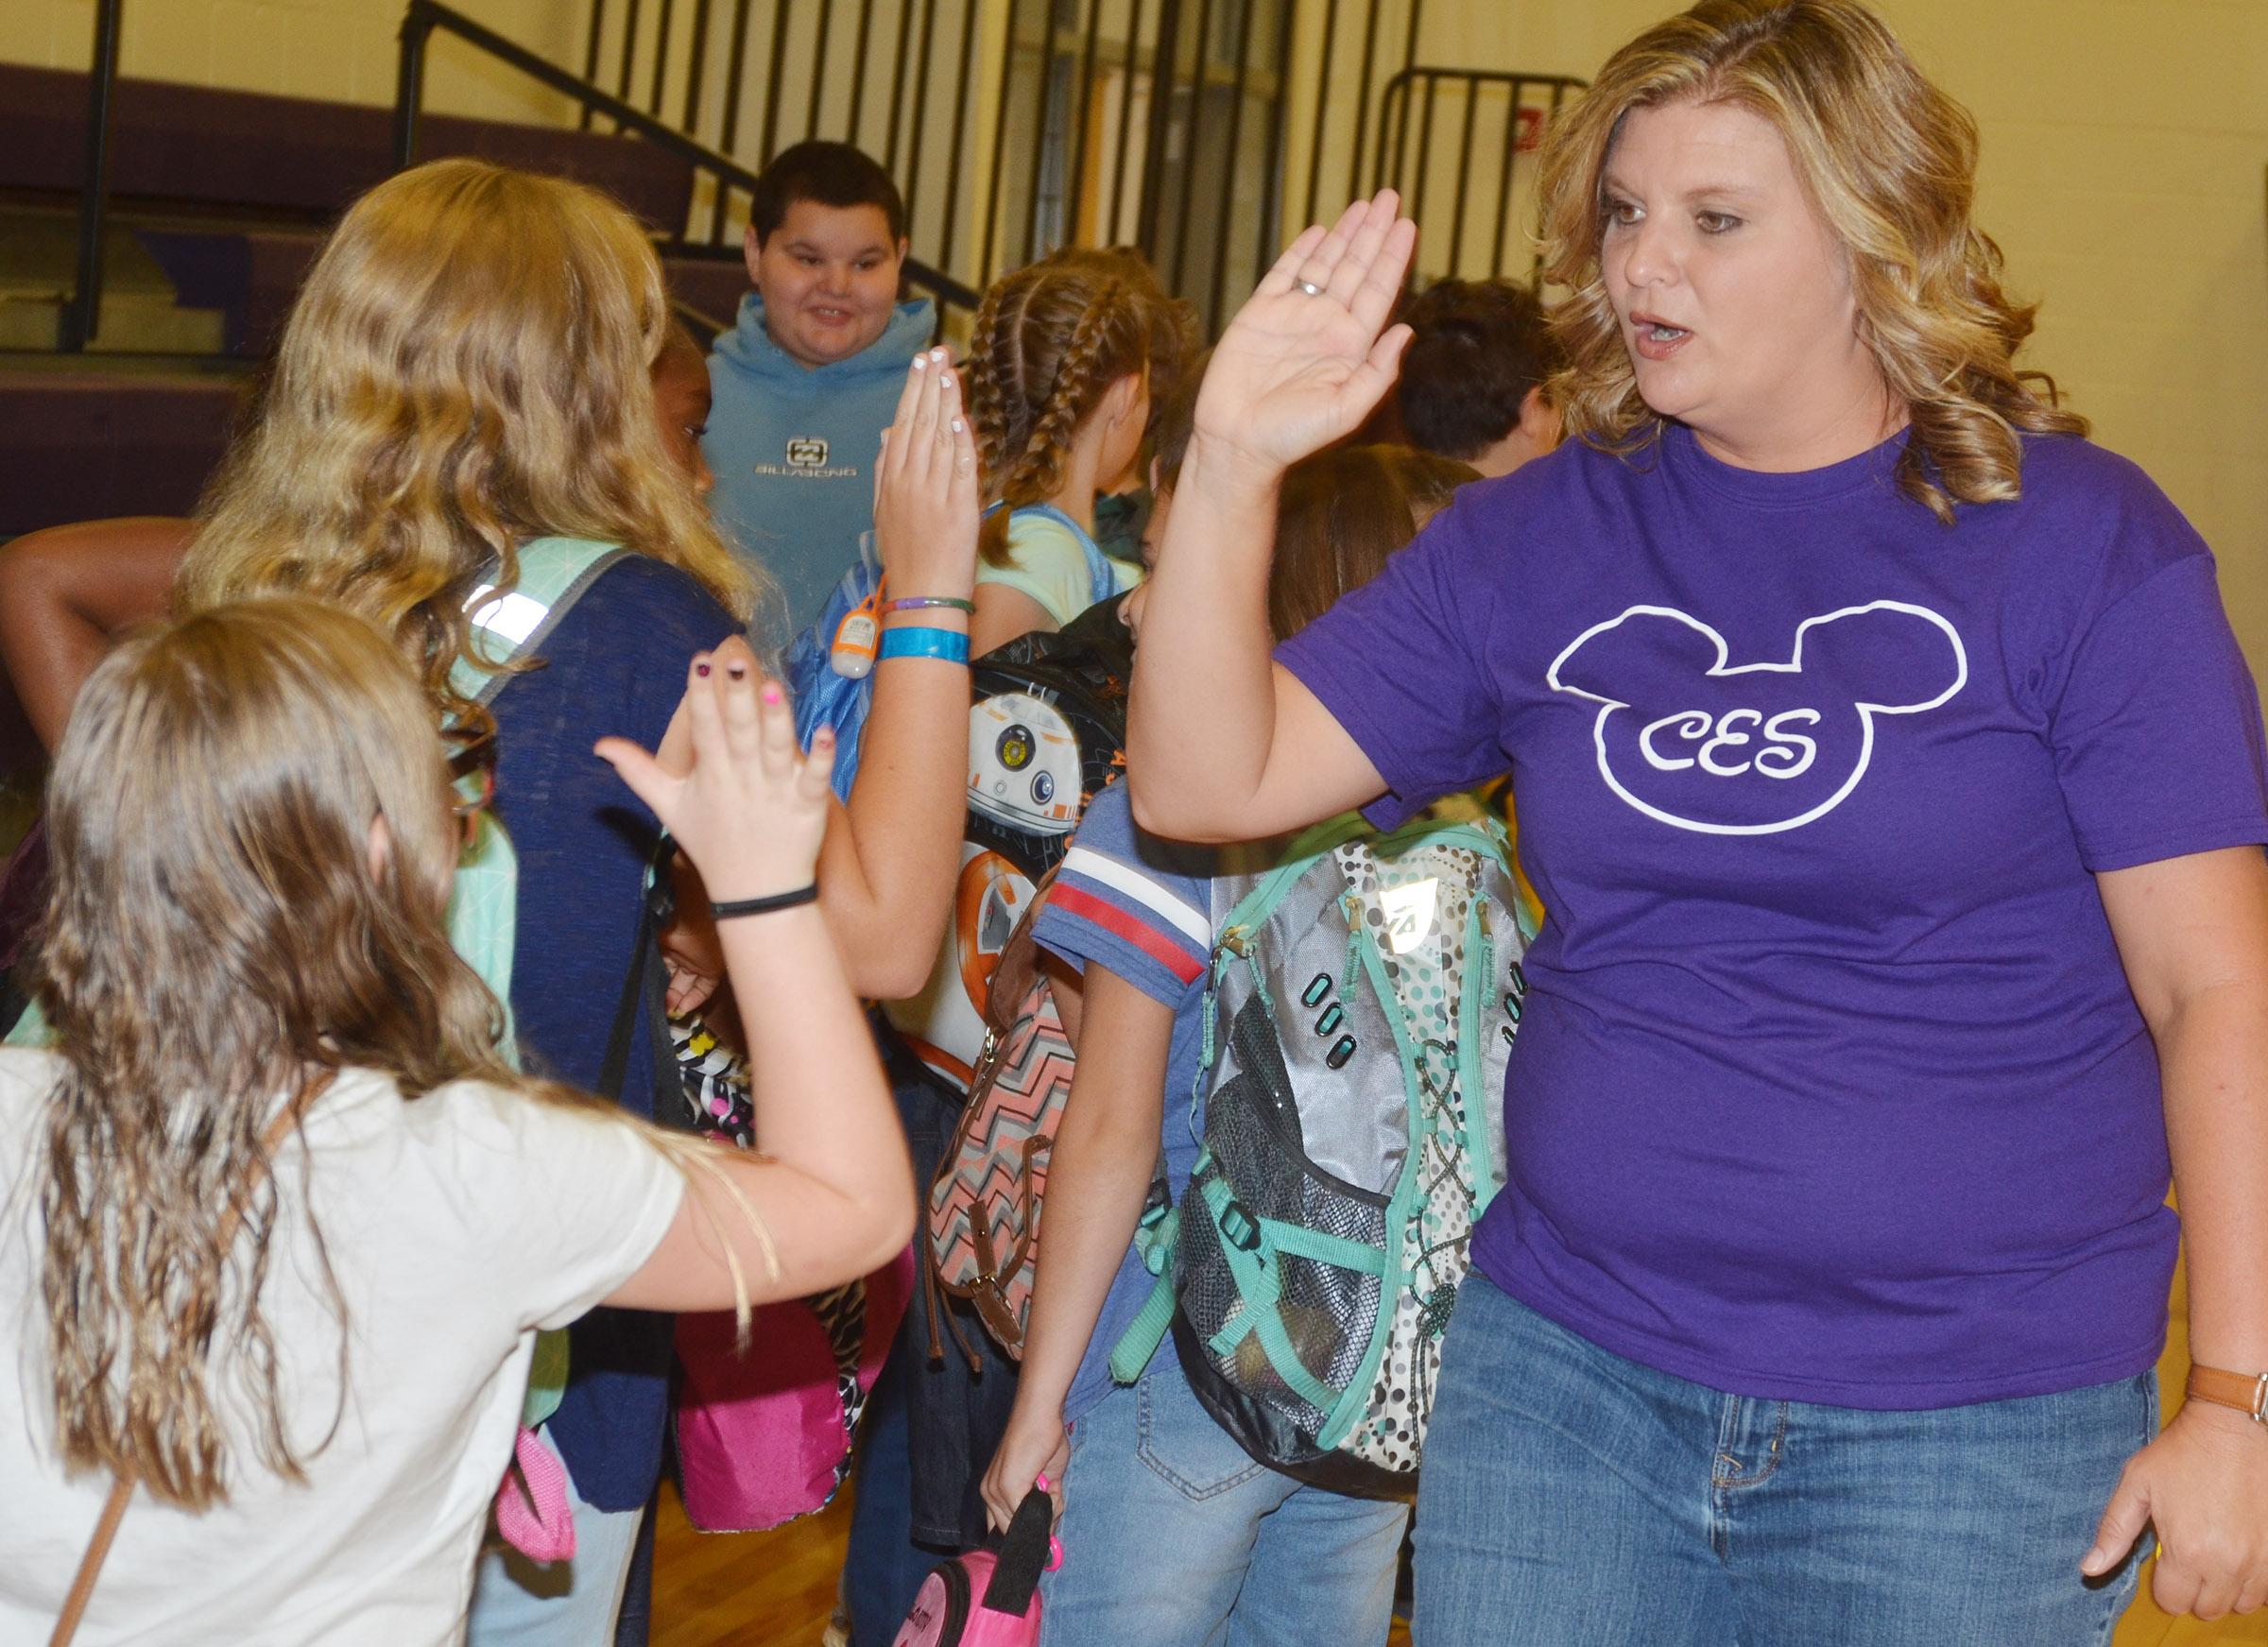 CES fifth-grade teacher Tammy Hash high-fives her students.